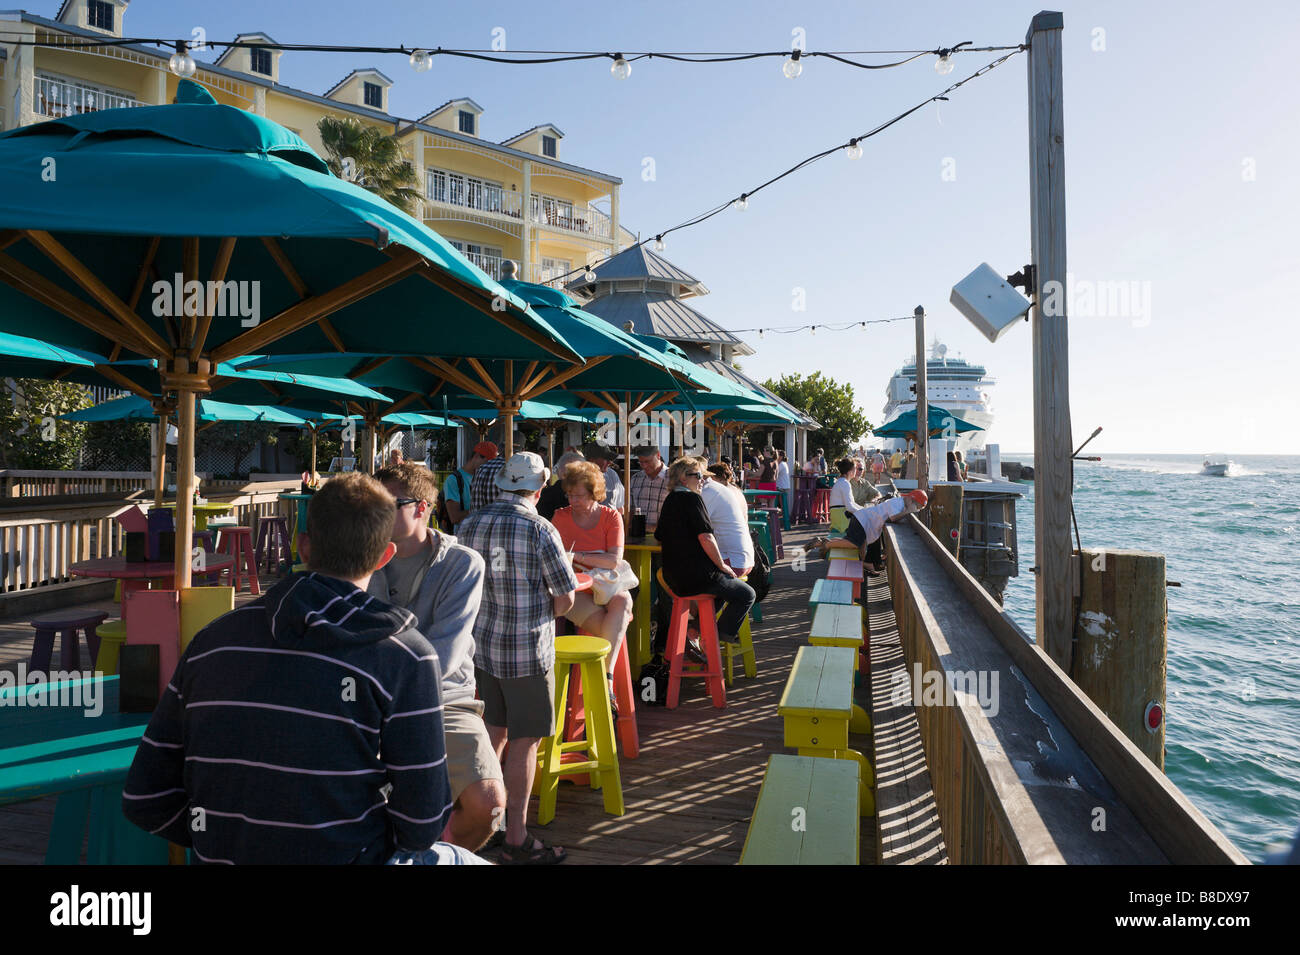 Sunset Pier bar and restaurant in the late afternoon, Ocean Key Resort, Old Town, Key West, Florida Keys, USA Stock Photo